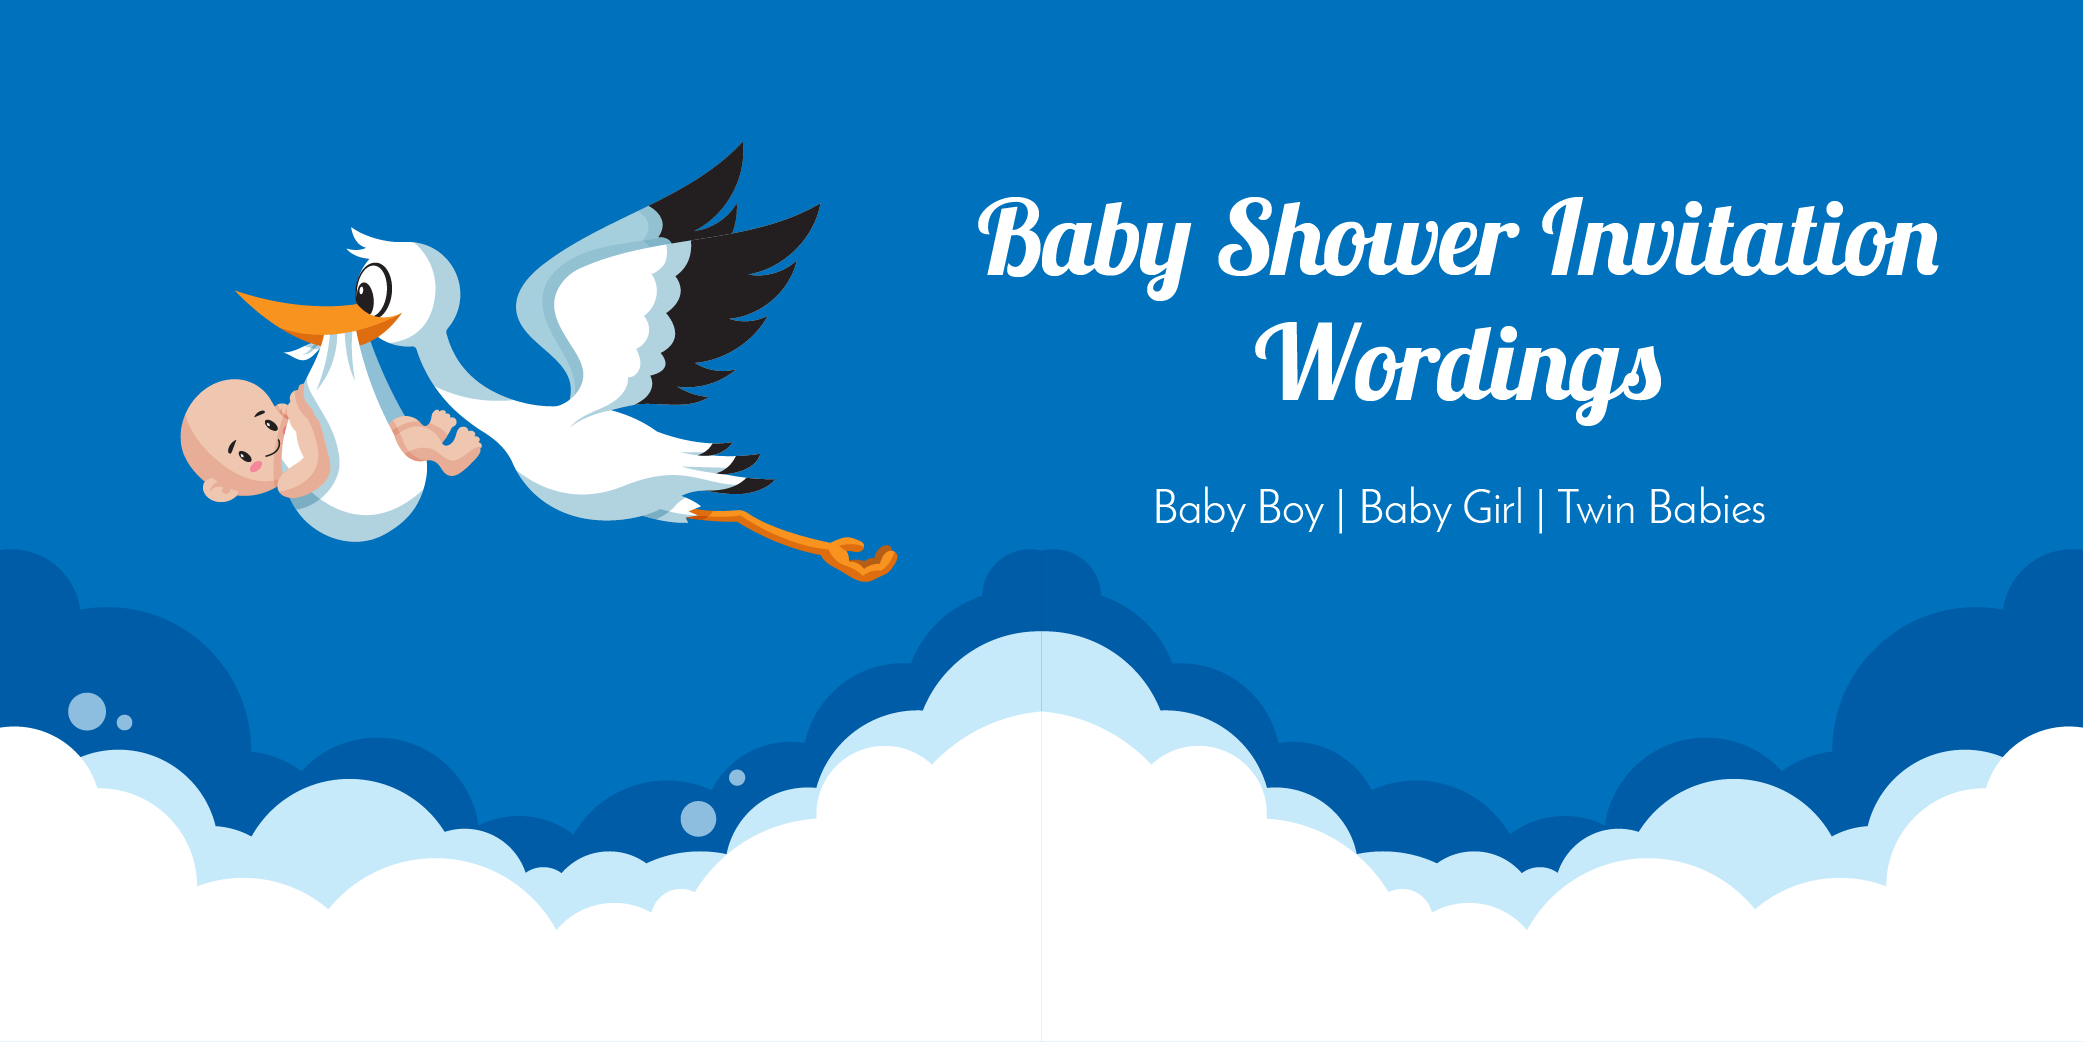 Baby Shower Invitation Wordings Invitation Video Animated